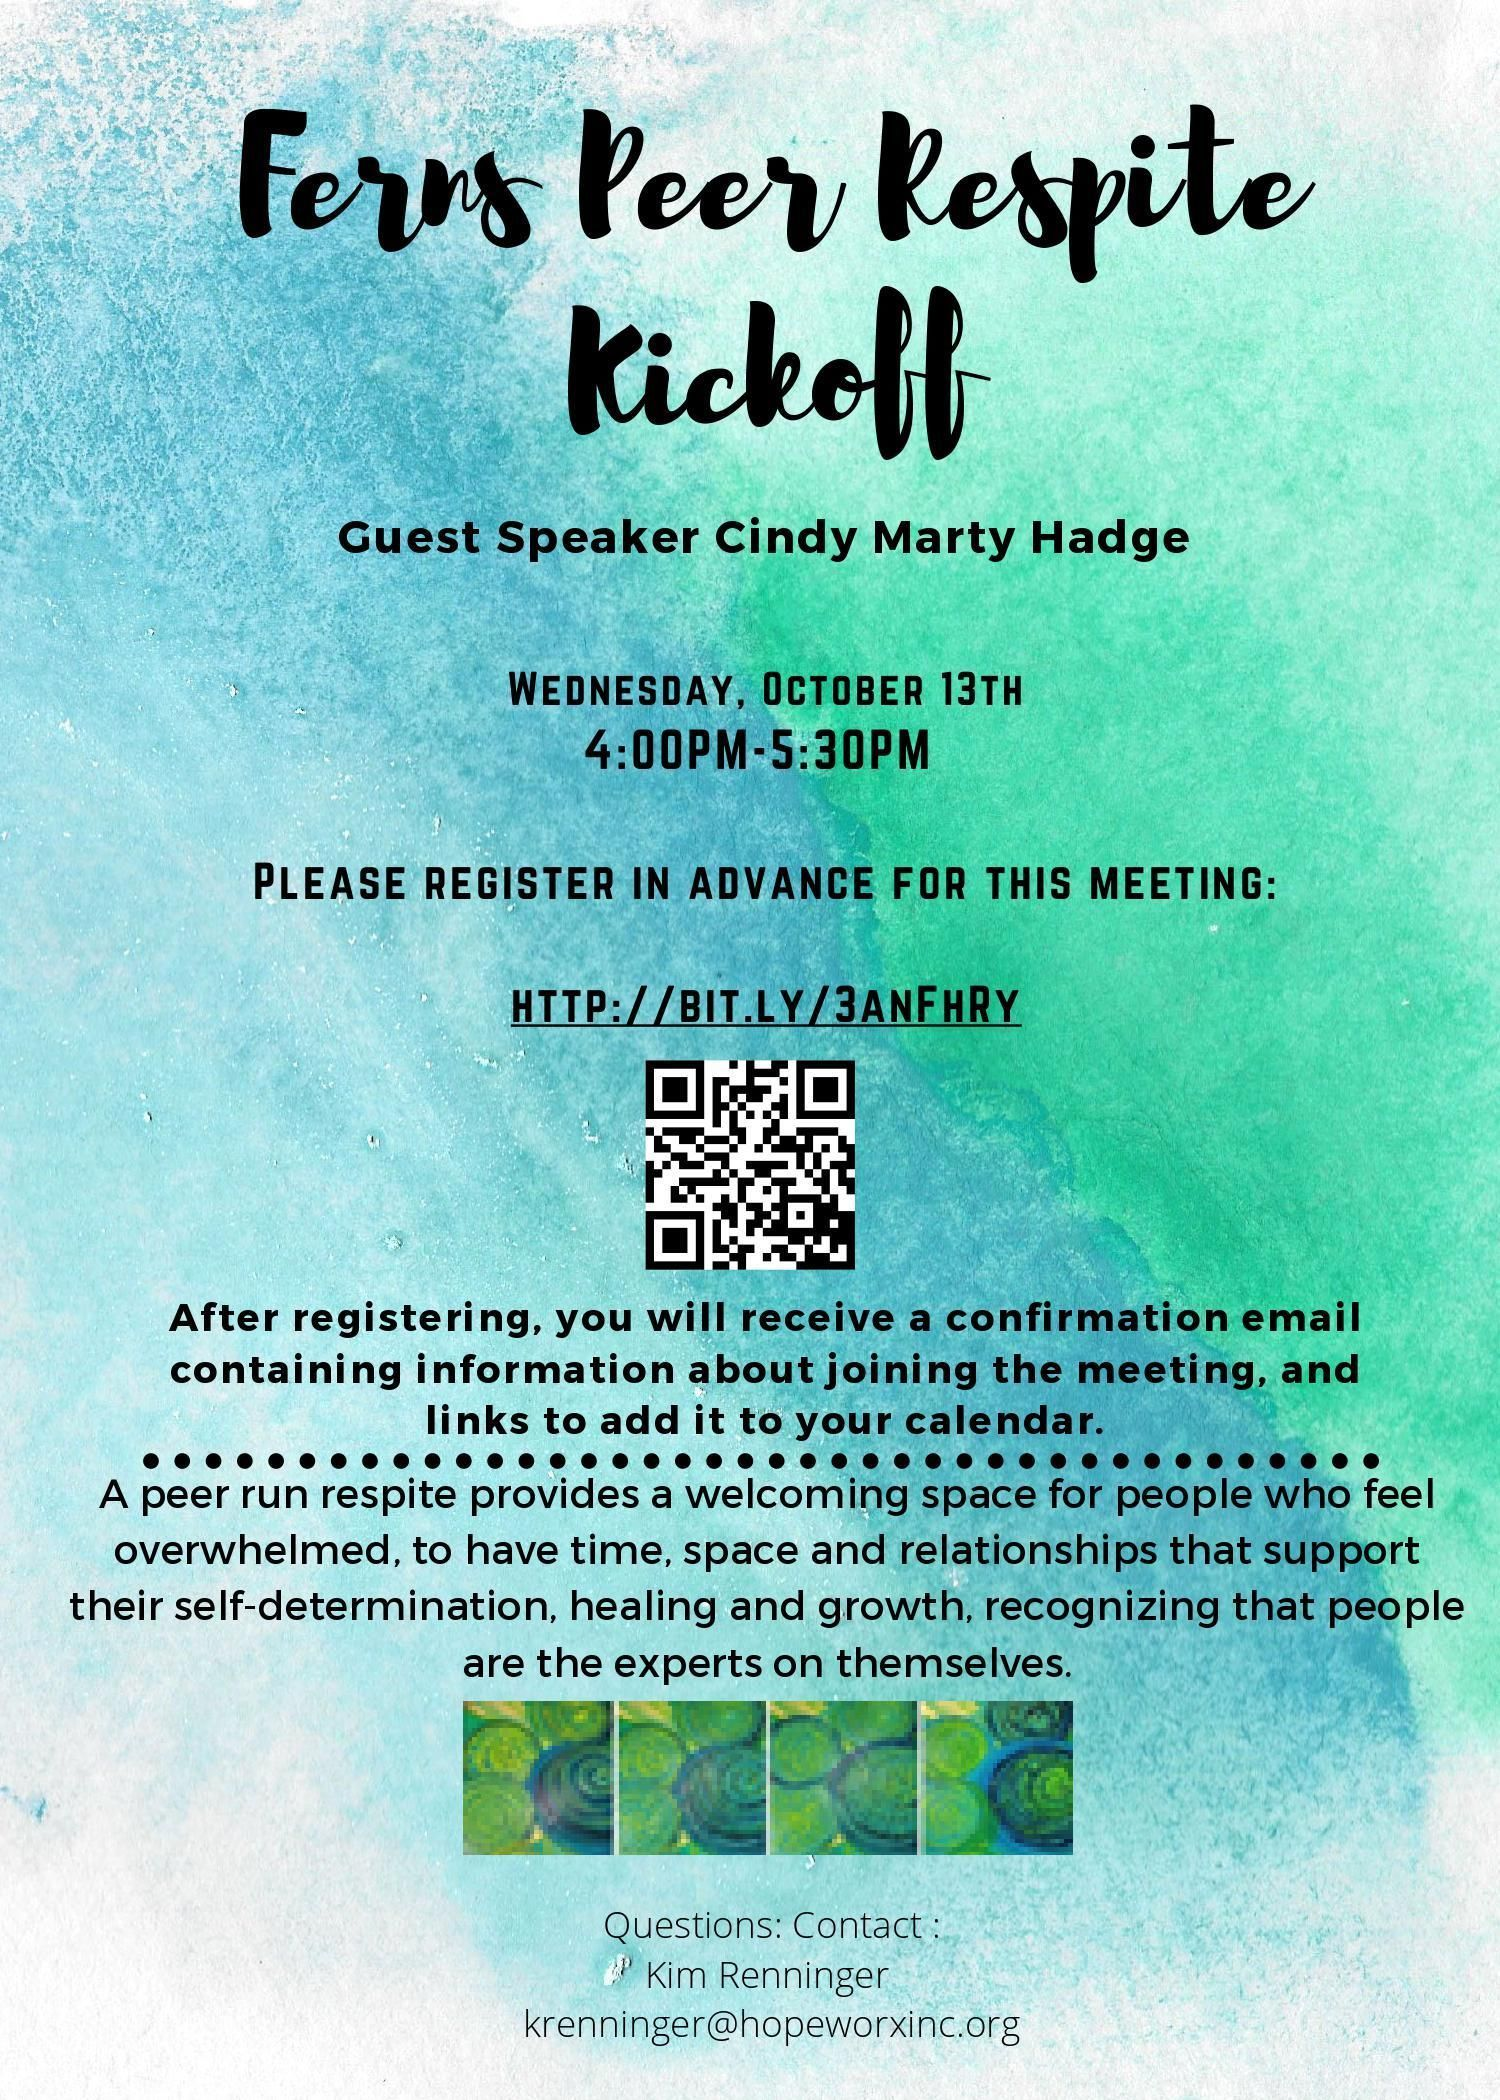 The Ferns Peer Respite Kick Off is October 13th.